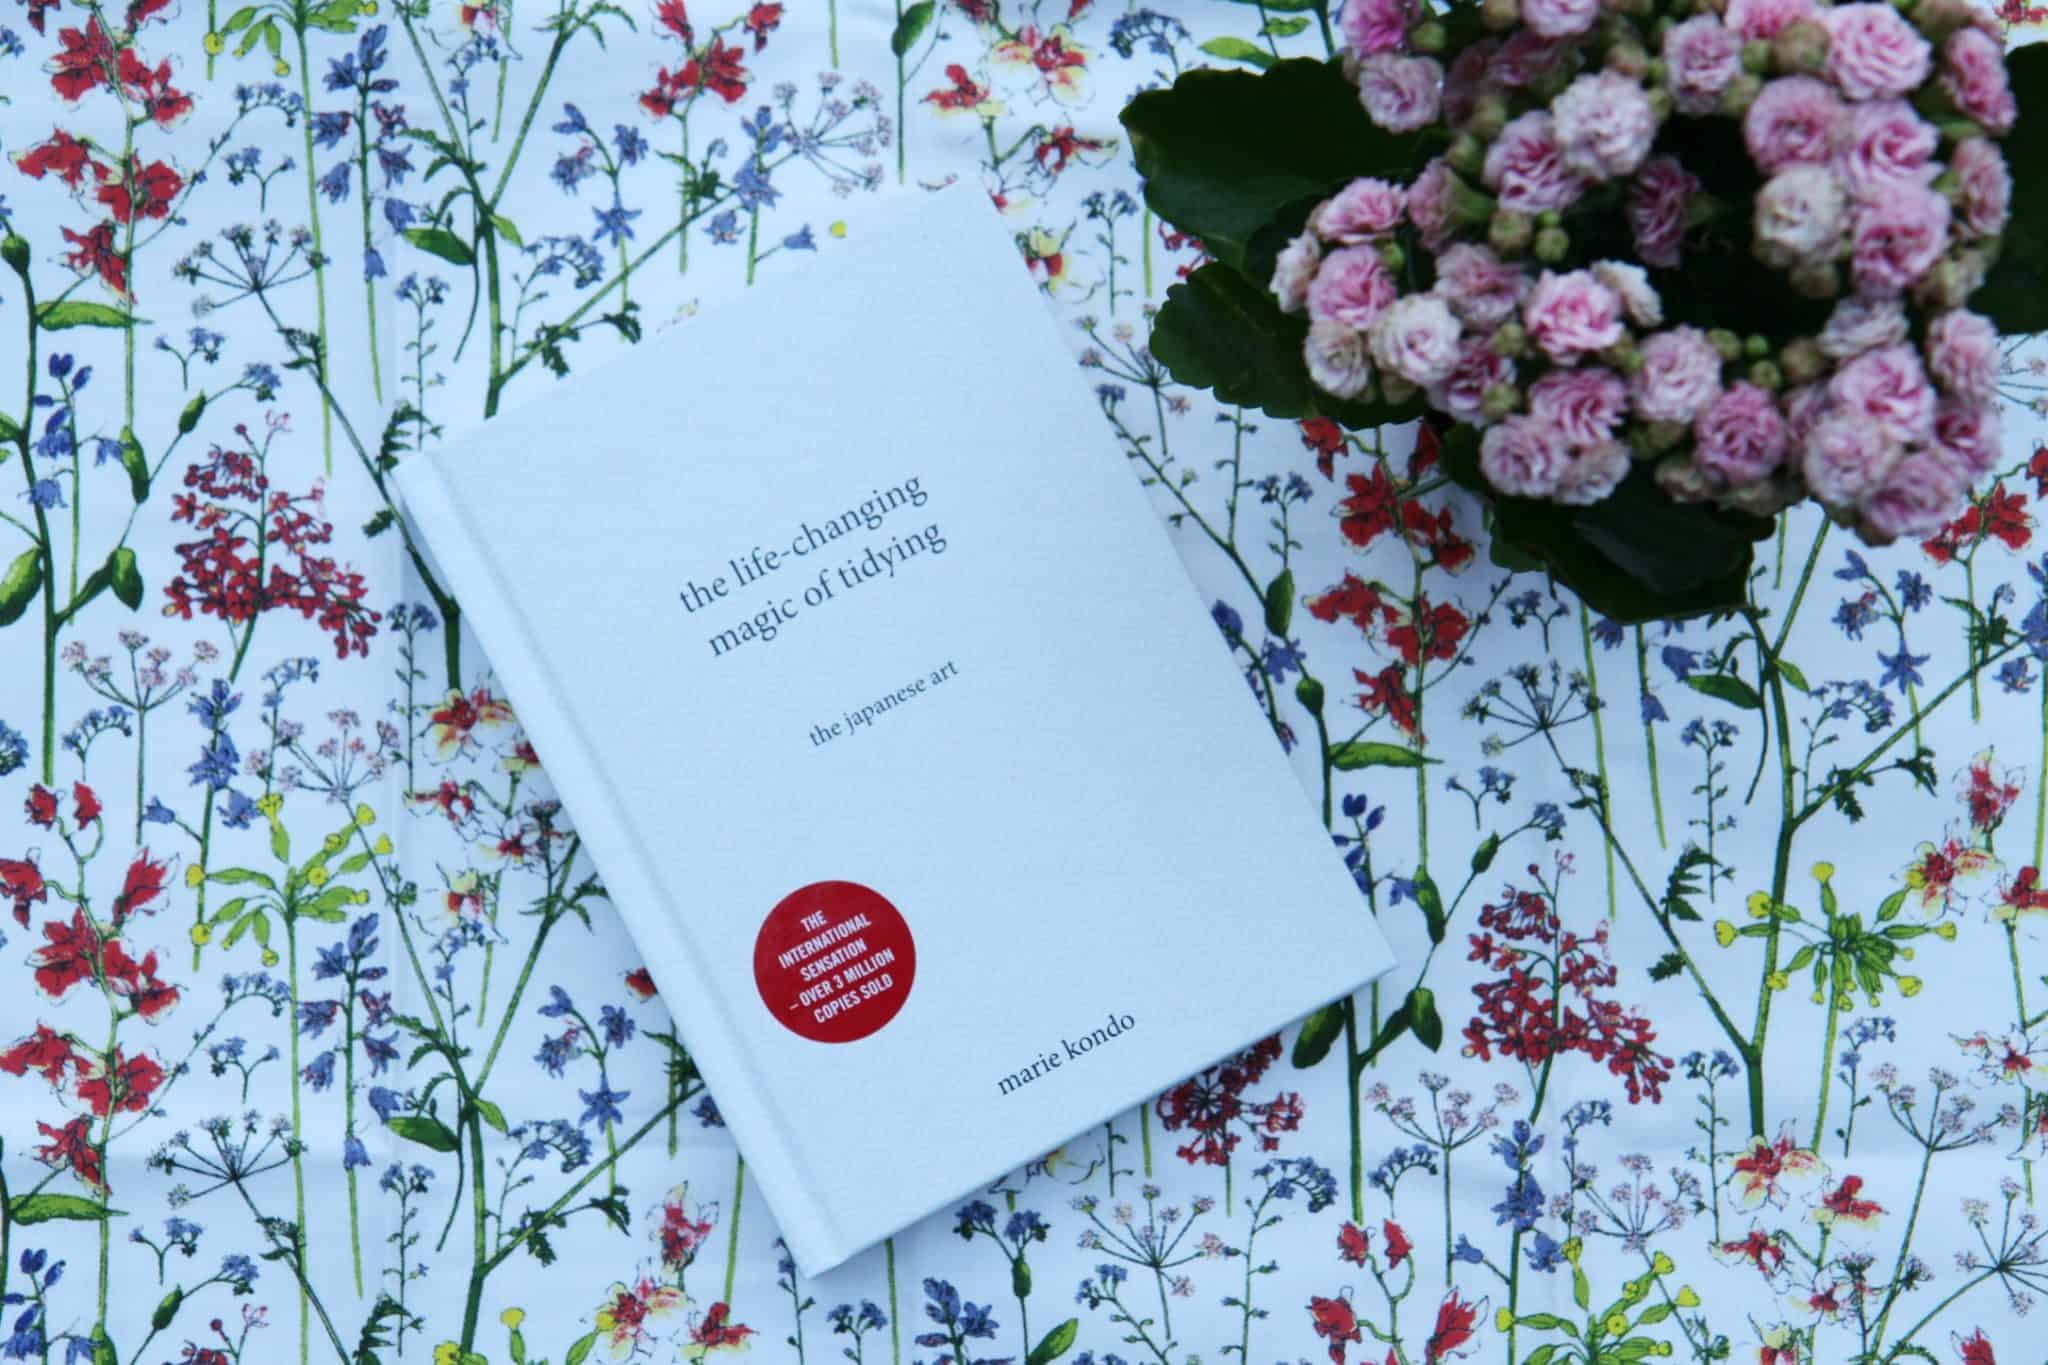 Book cover 'the life-changing magic of tidying' by Marie Kondo